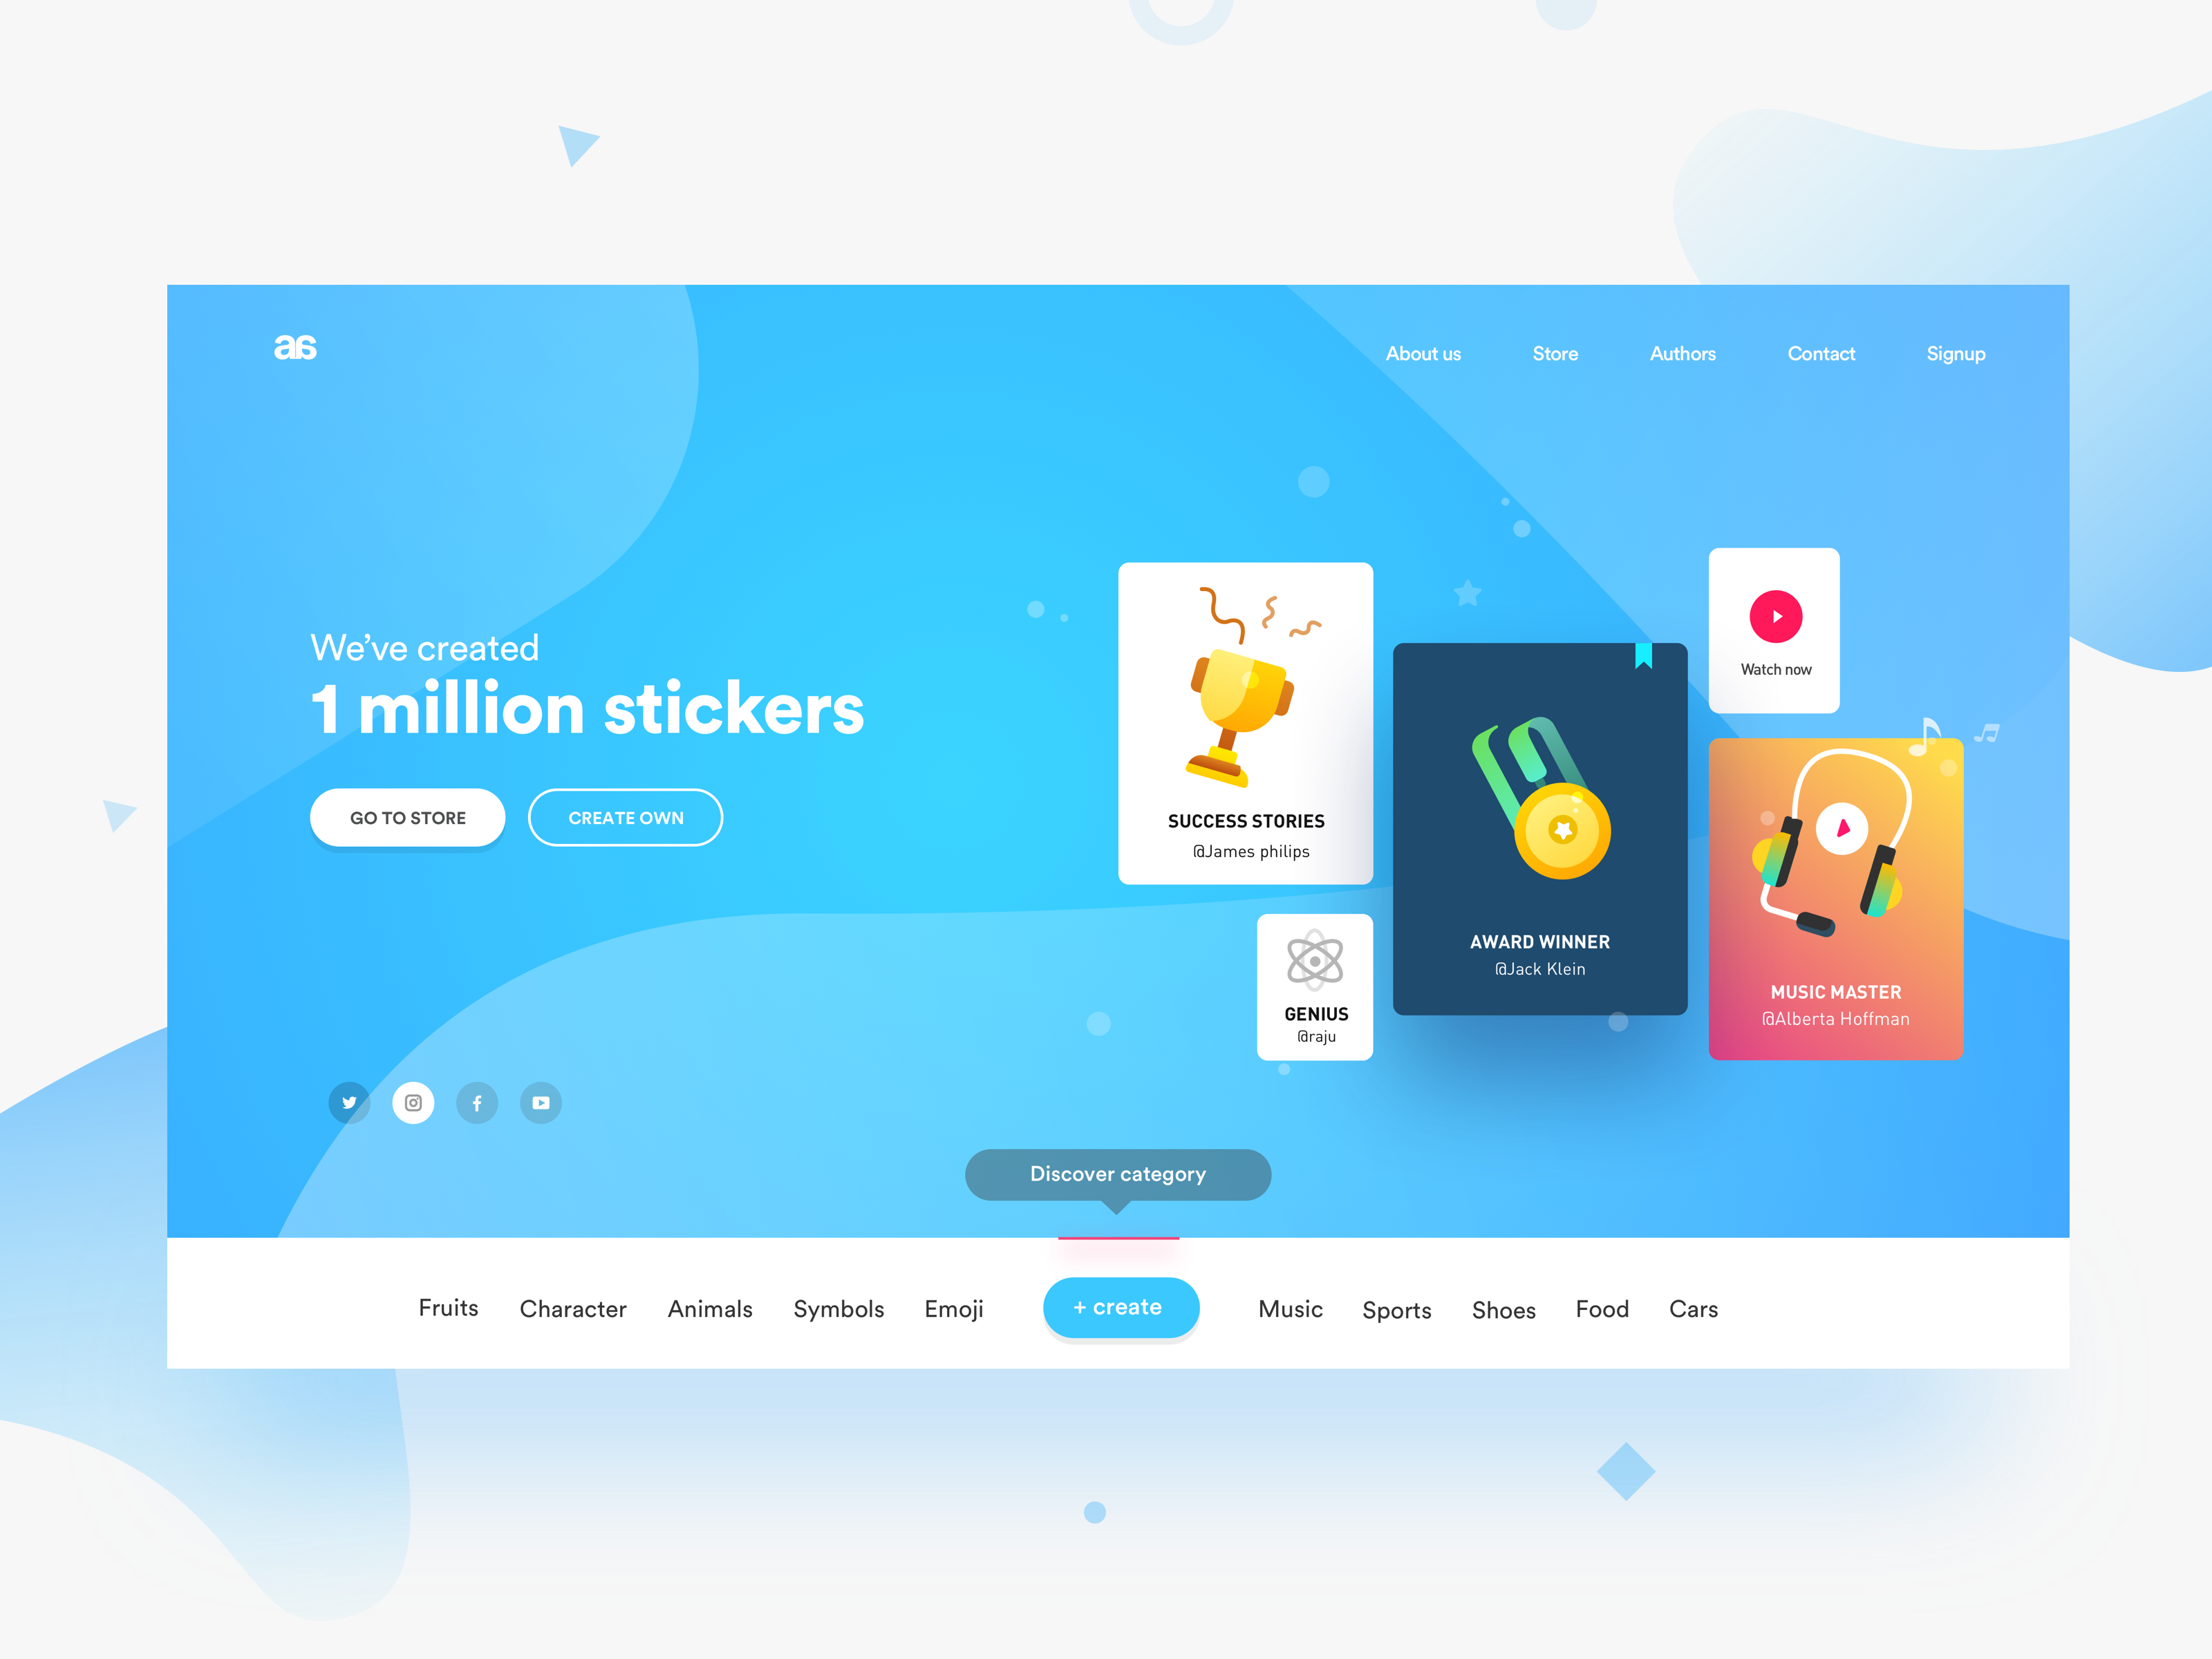 Stickers | Web Site Design inspiration - User Experience | Pinterest ...